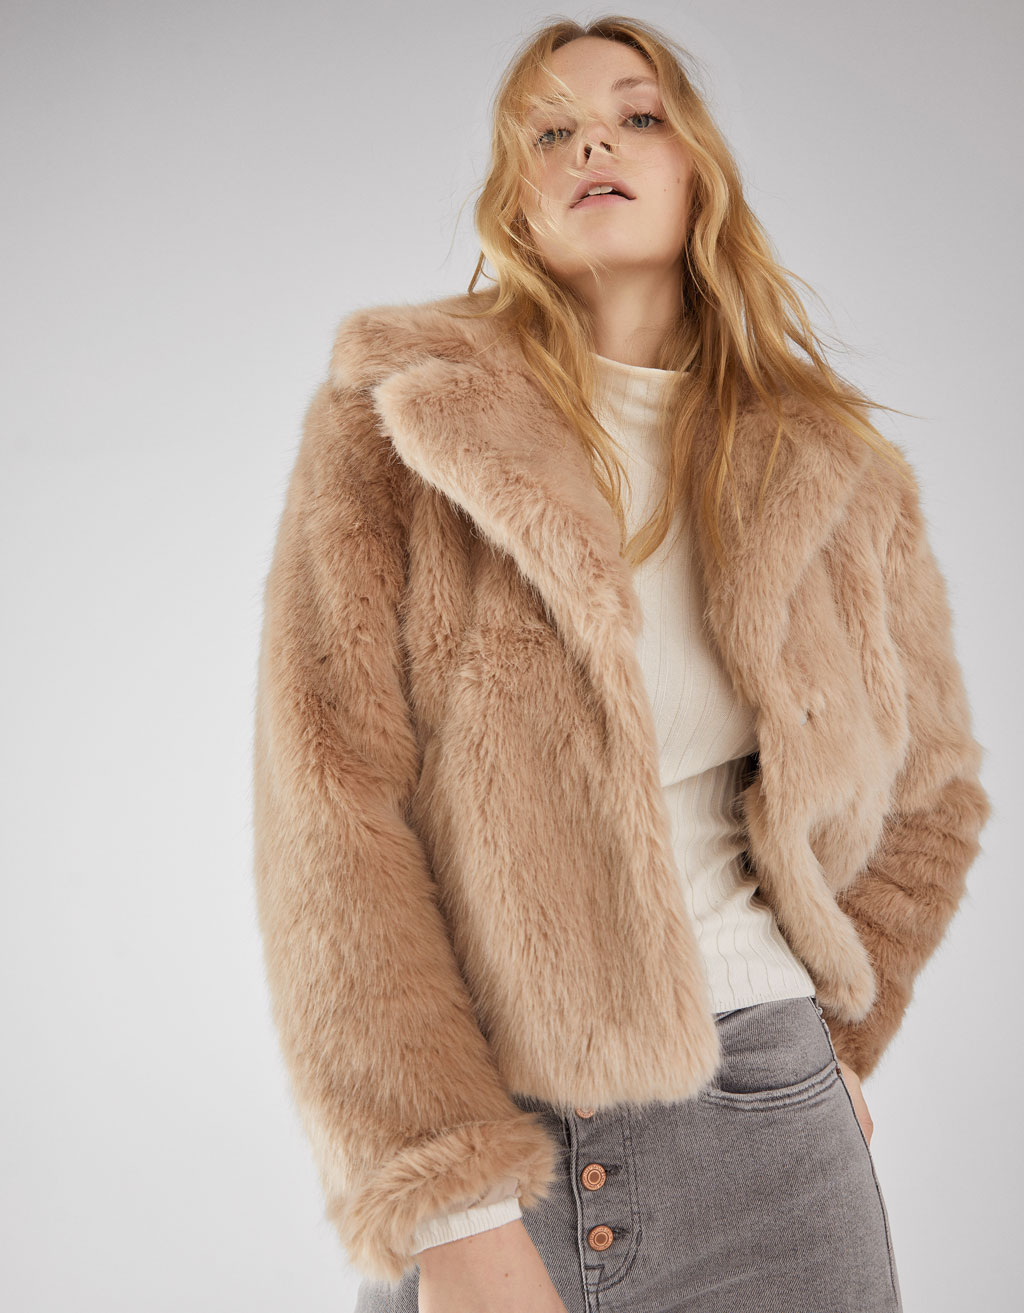 Short fuzzy coat with lapel collar